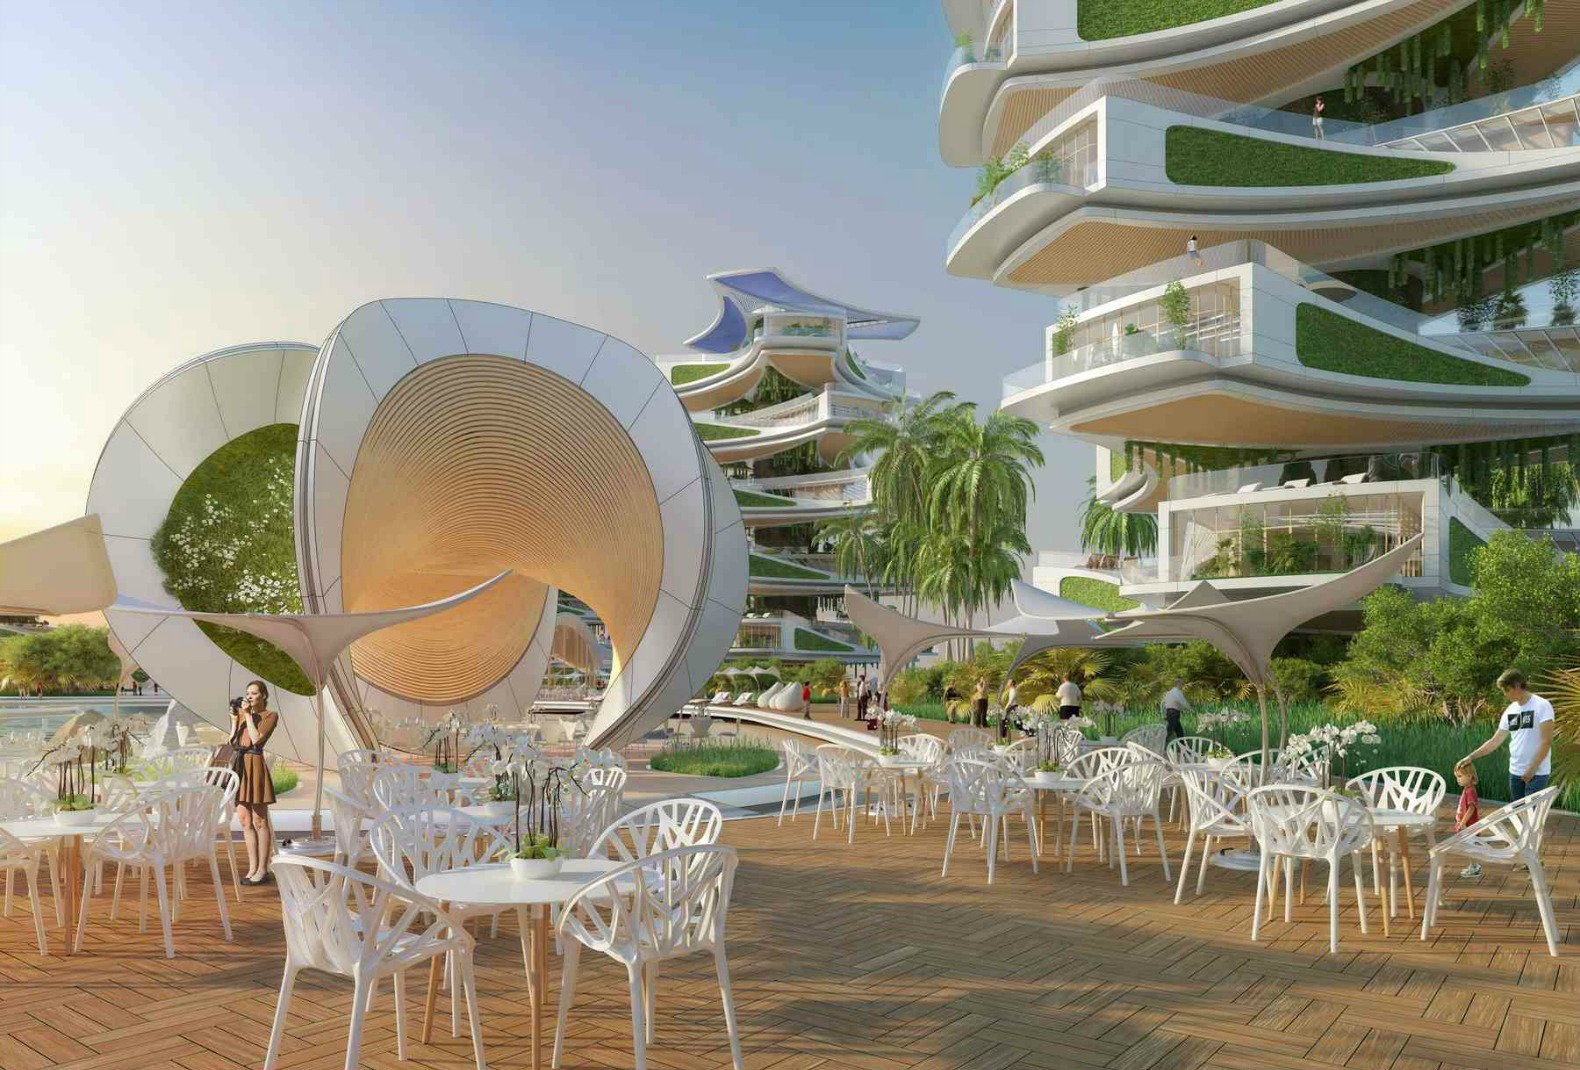 Vincent Callebauts visionary ecoresort for the